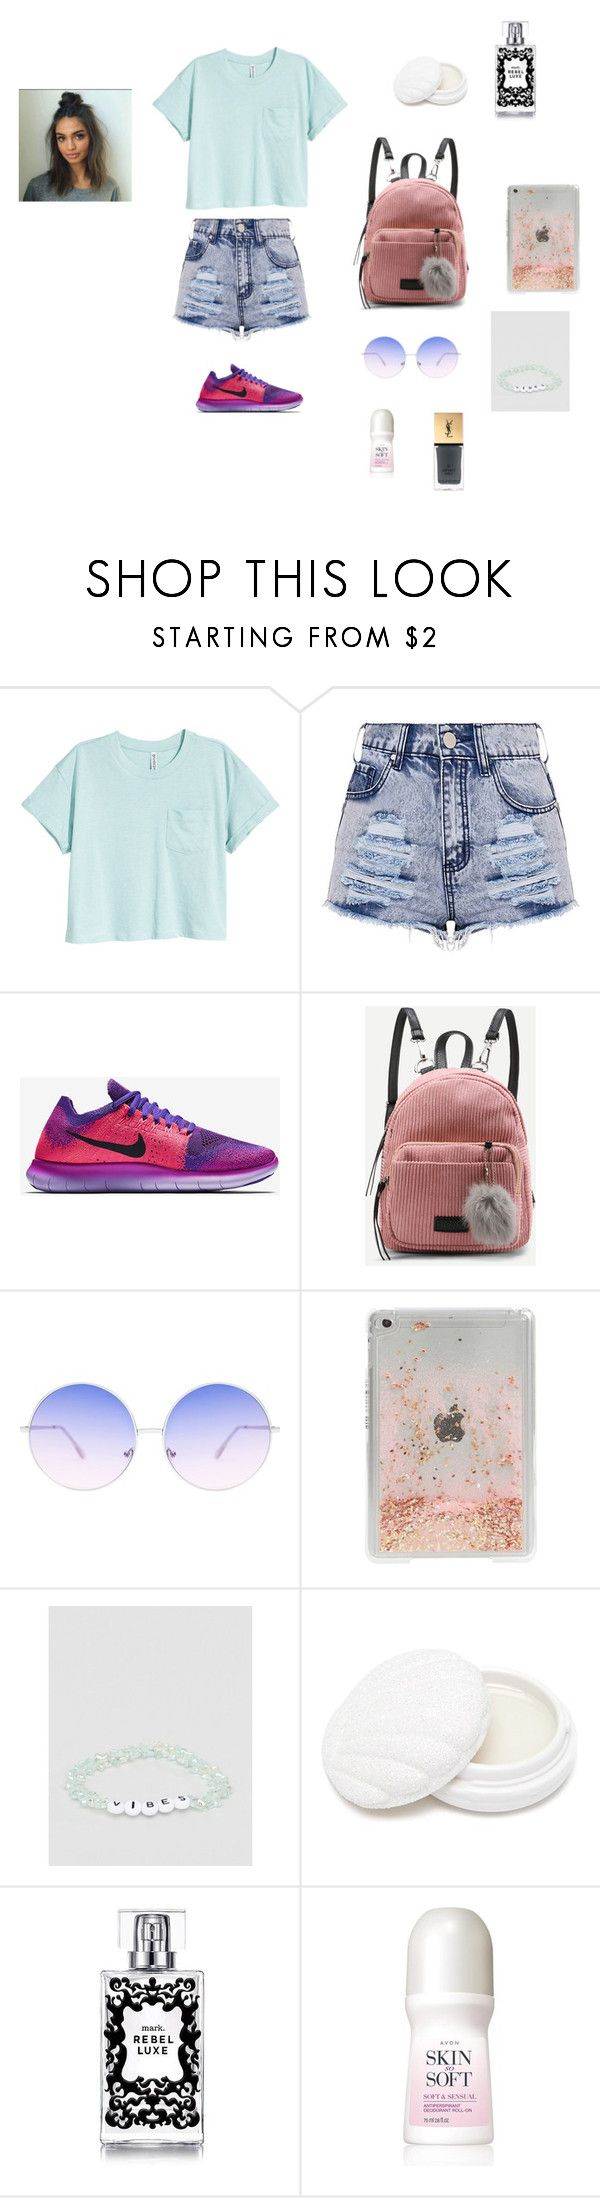 """""""Kid"""" by aiea ❤ liked on Polyvore featuring NIKE, Skinnydip, ASOS, Forever 21, Avon and Yves Saint Laurent"""